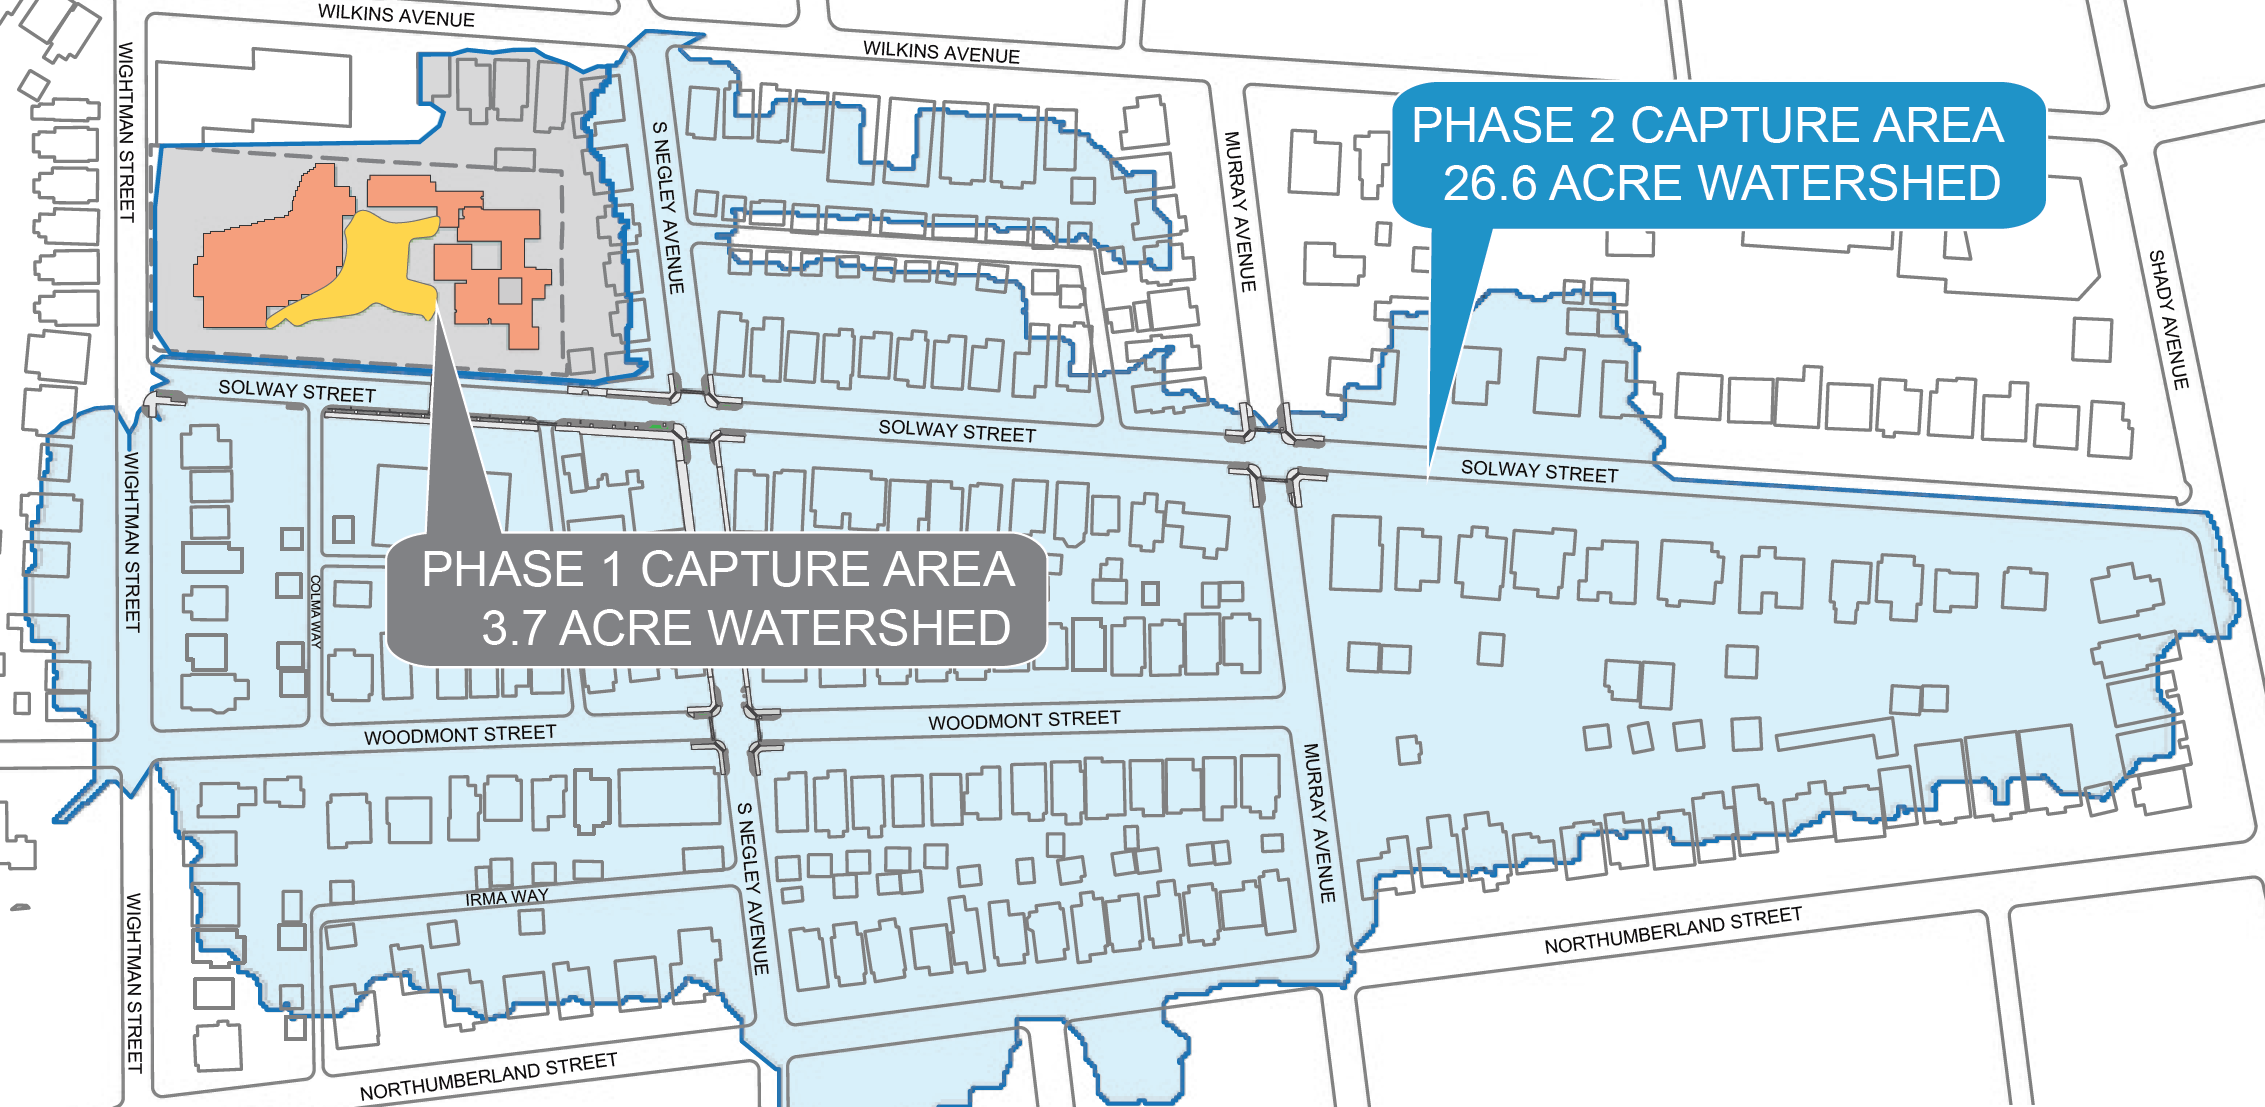 Map showing Wightman Park Phase II project and drainage area